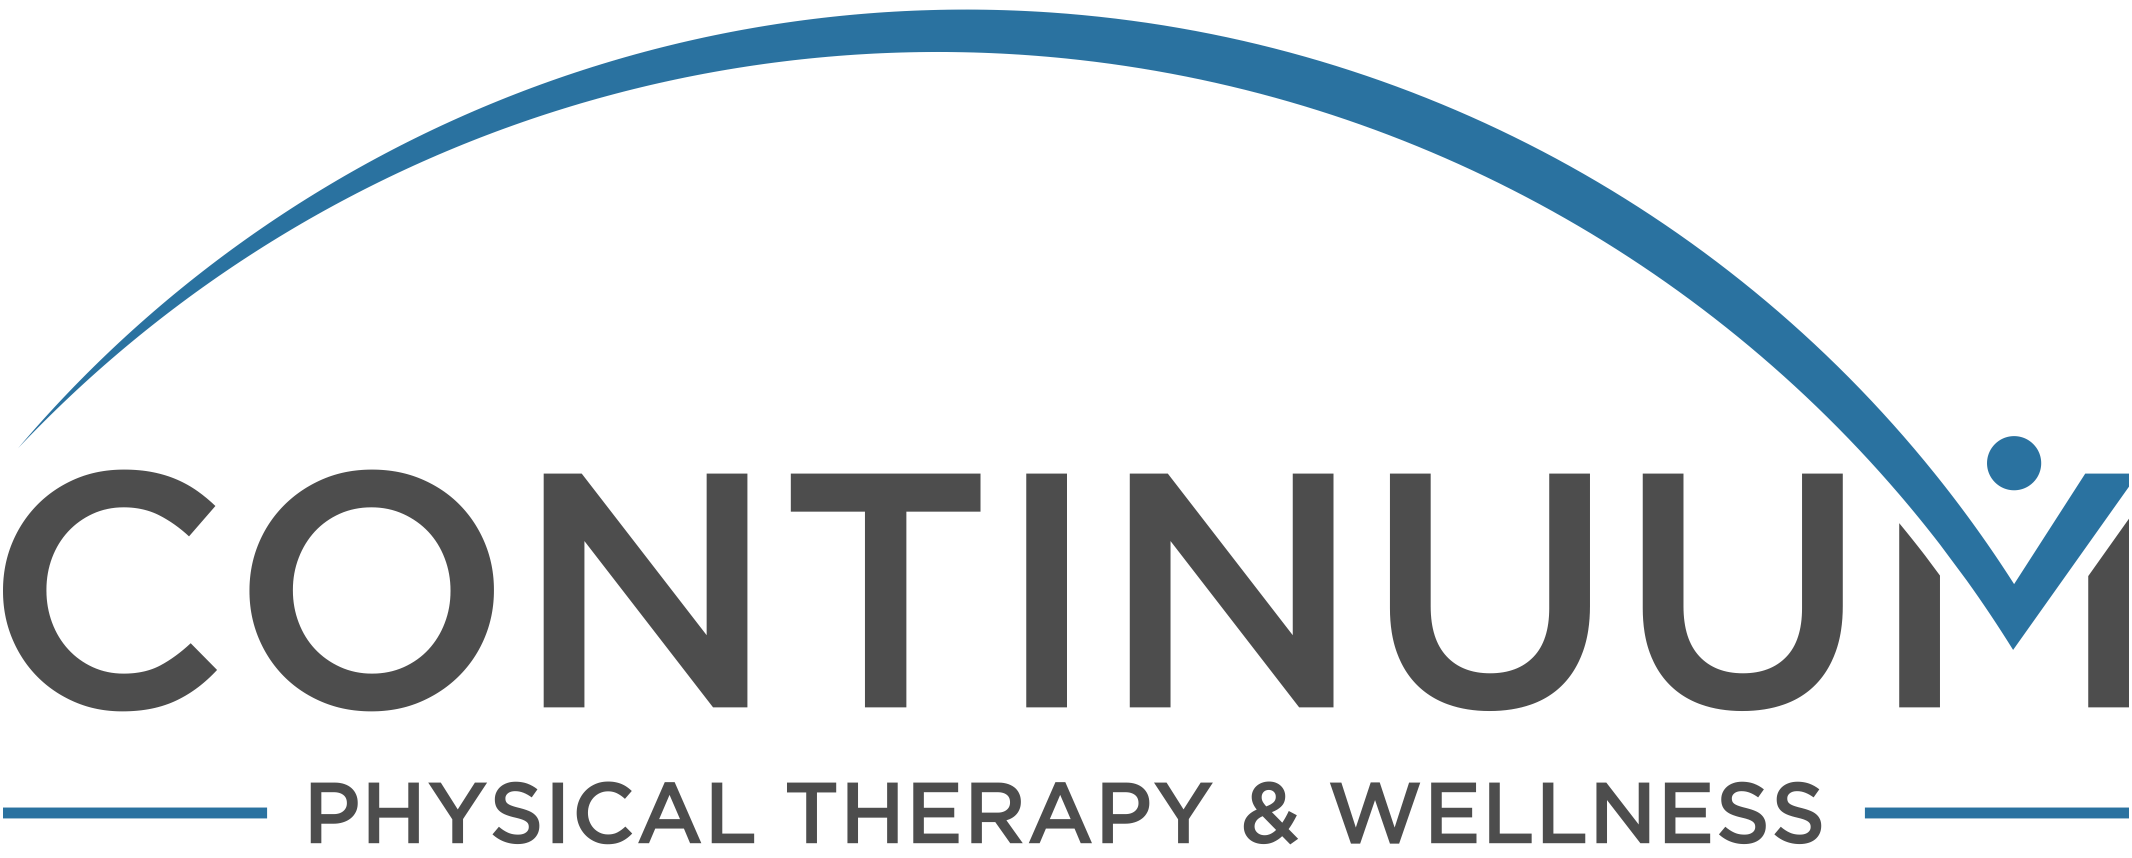 Continuum Physical Therapy & Wellness